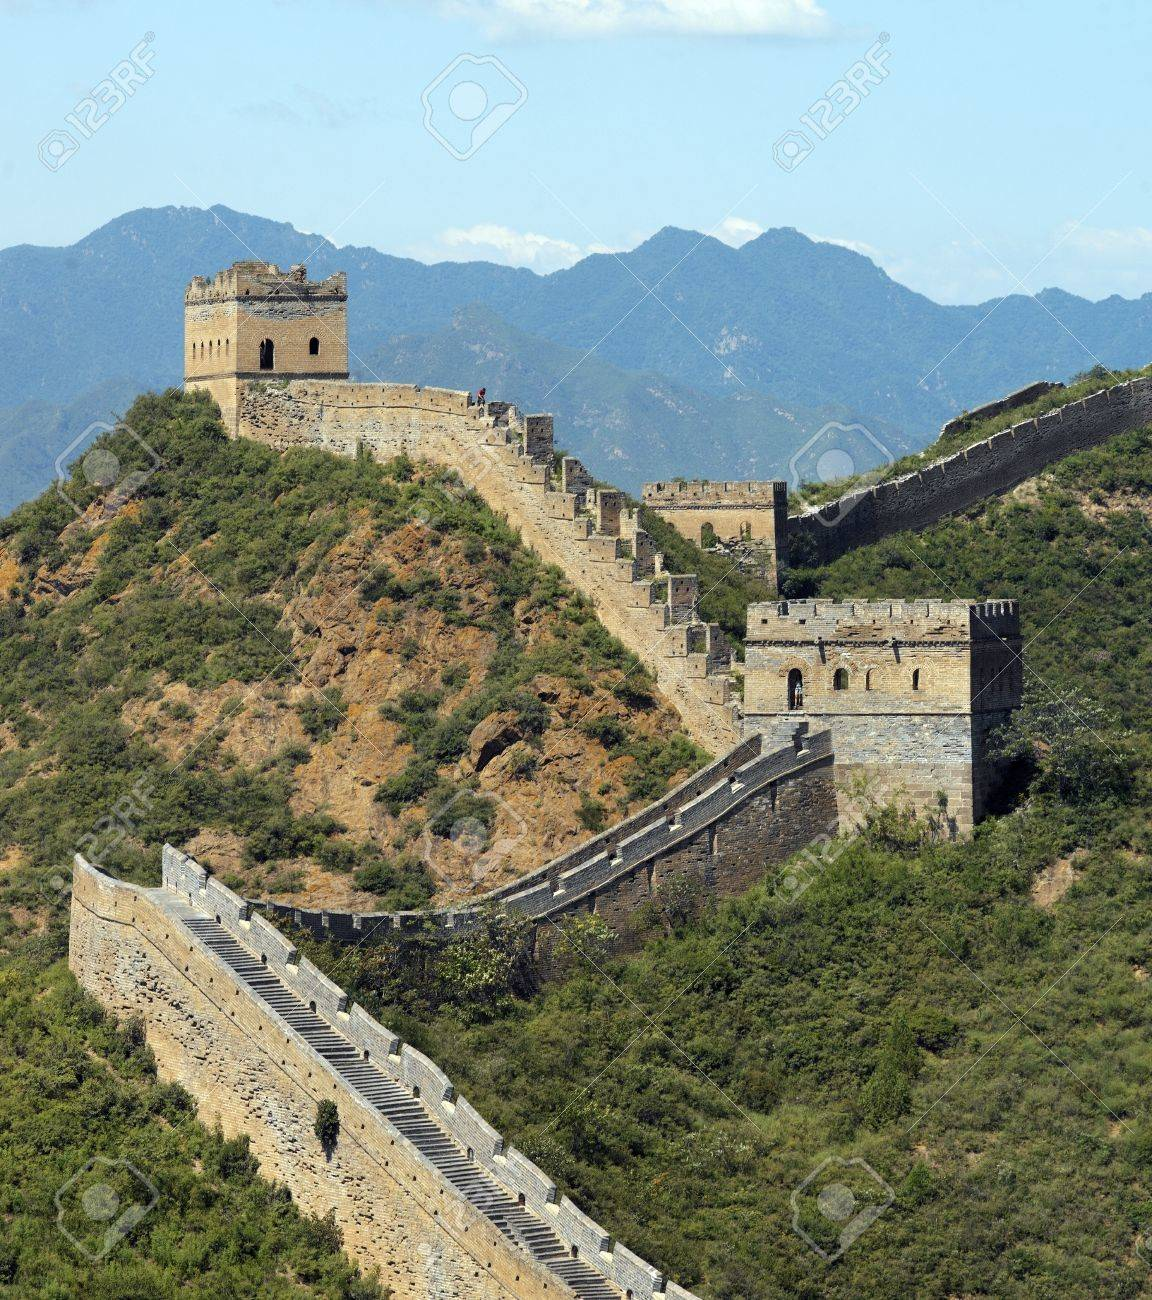 The Great Wall of China at Jinshanling near Beijing in the Peoples Republic of China - 20415046